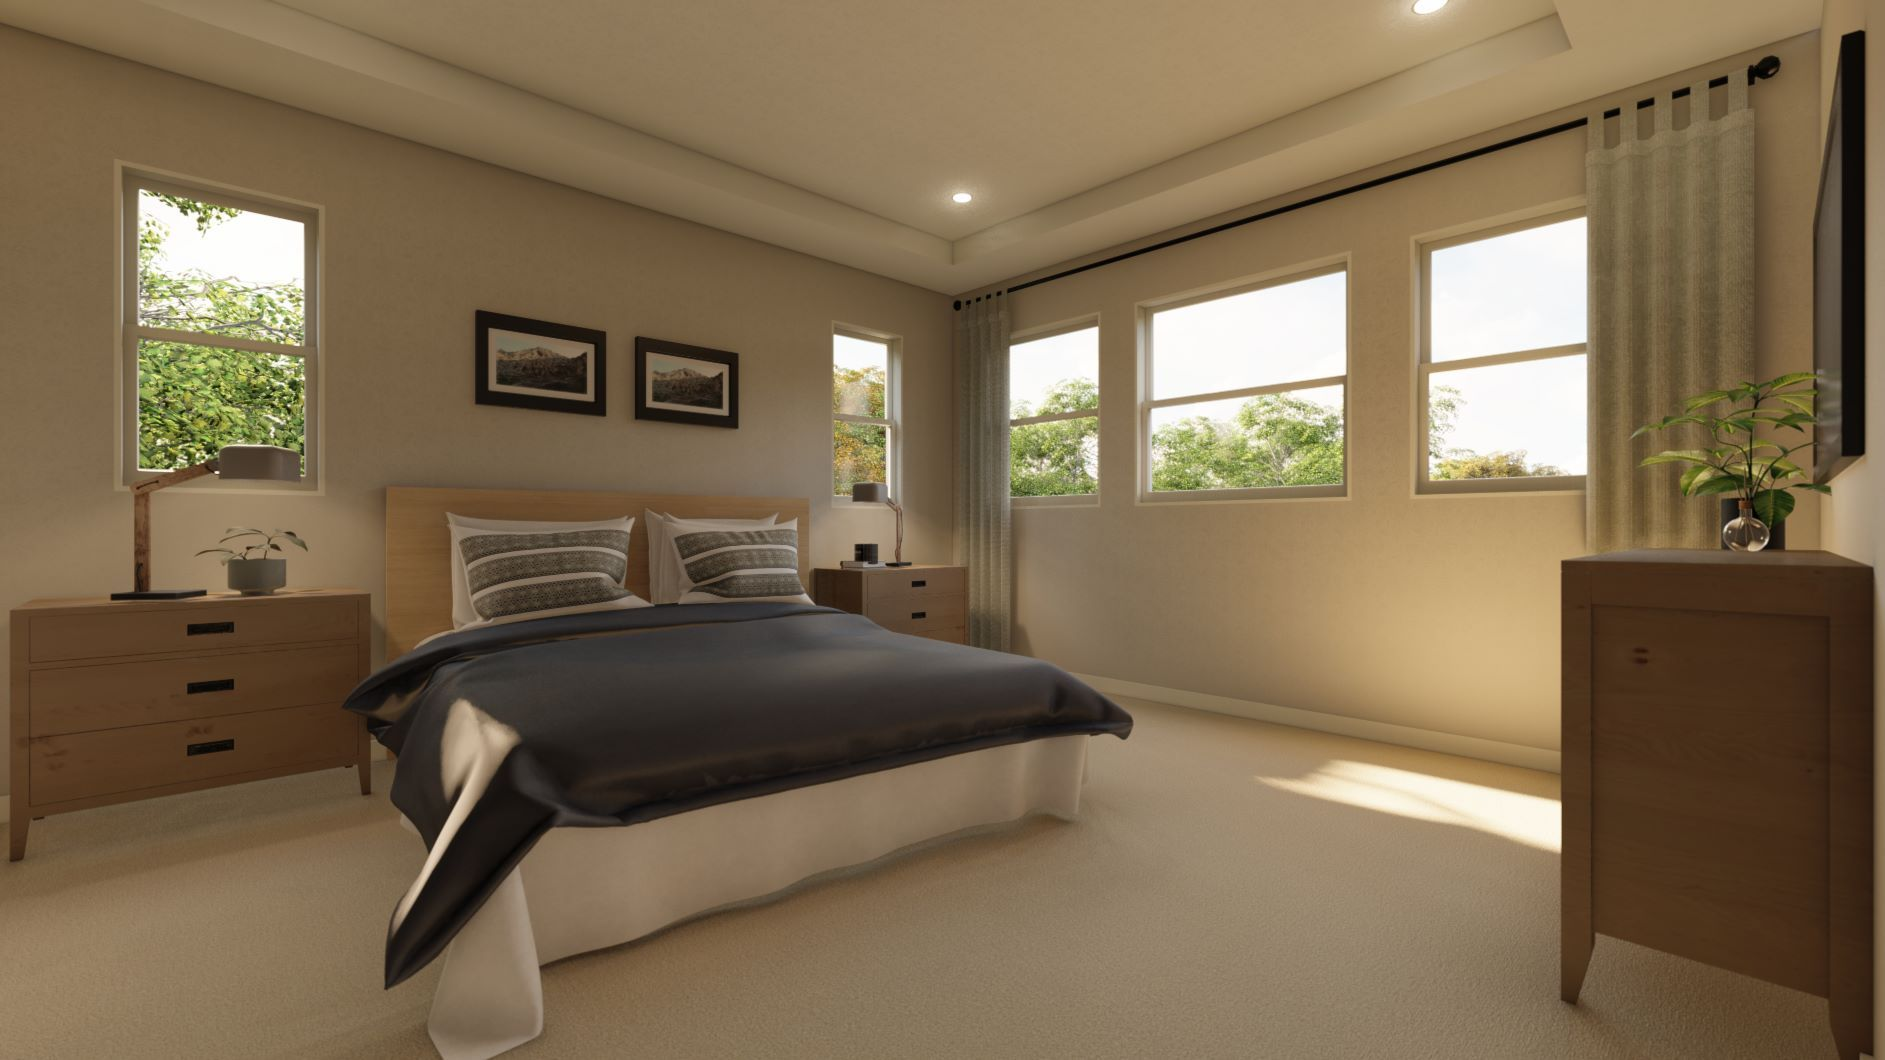 Bedroom featured in the Residence 2 By Discovery Homes in Oakland-Alameda, CA